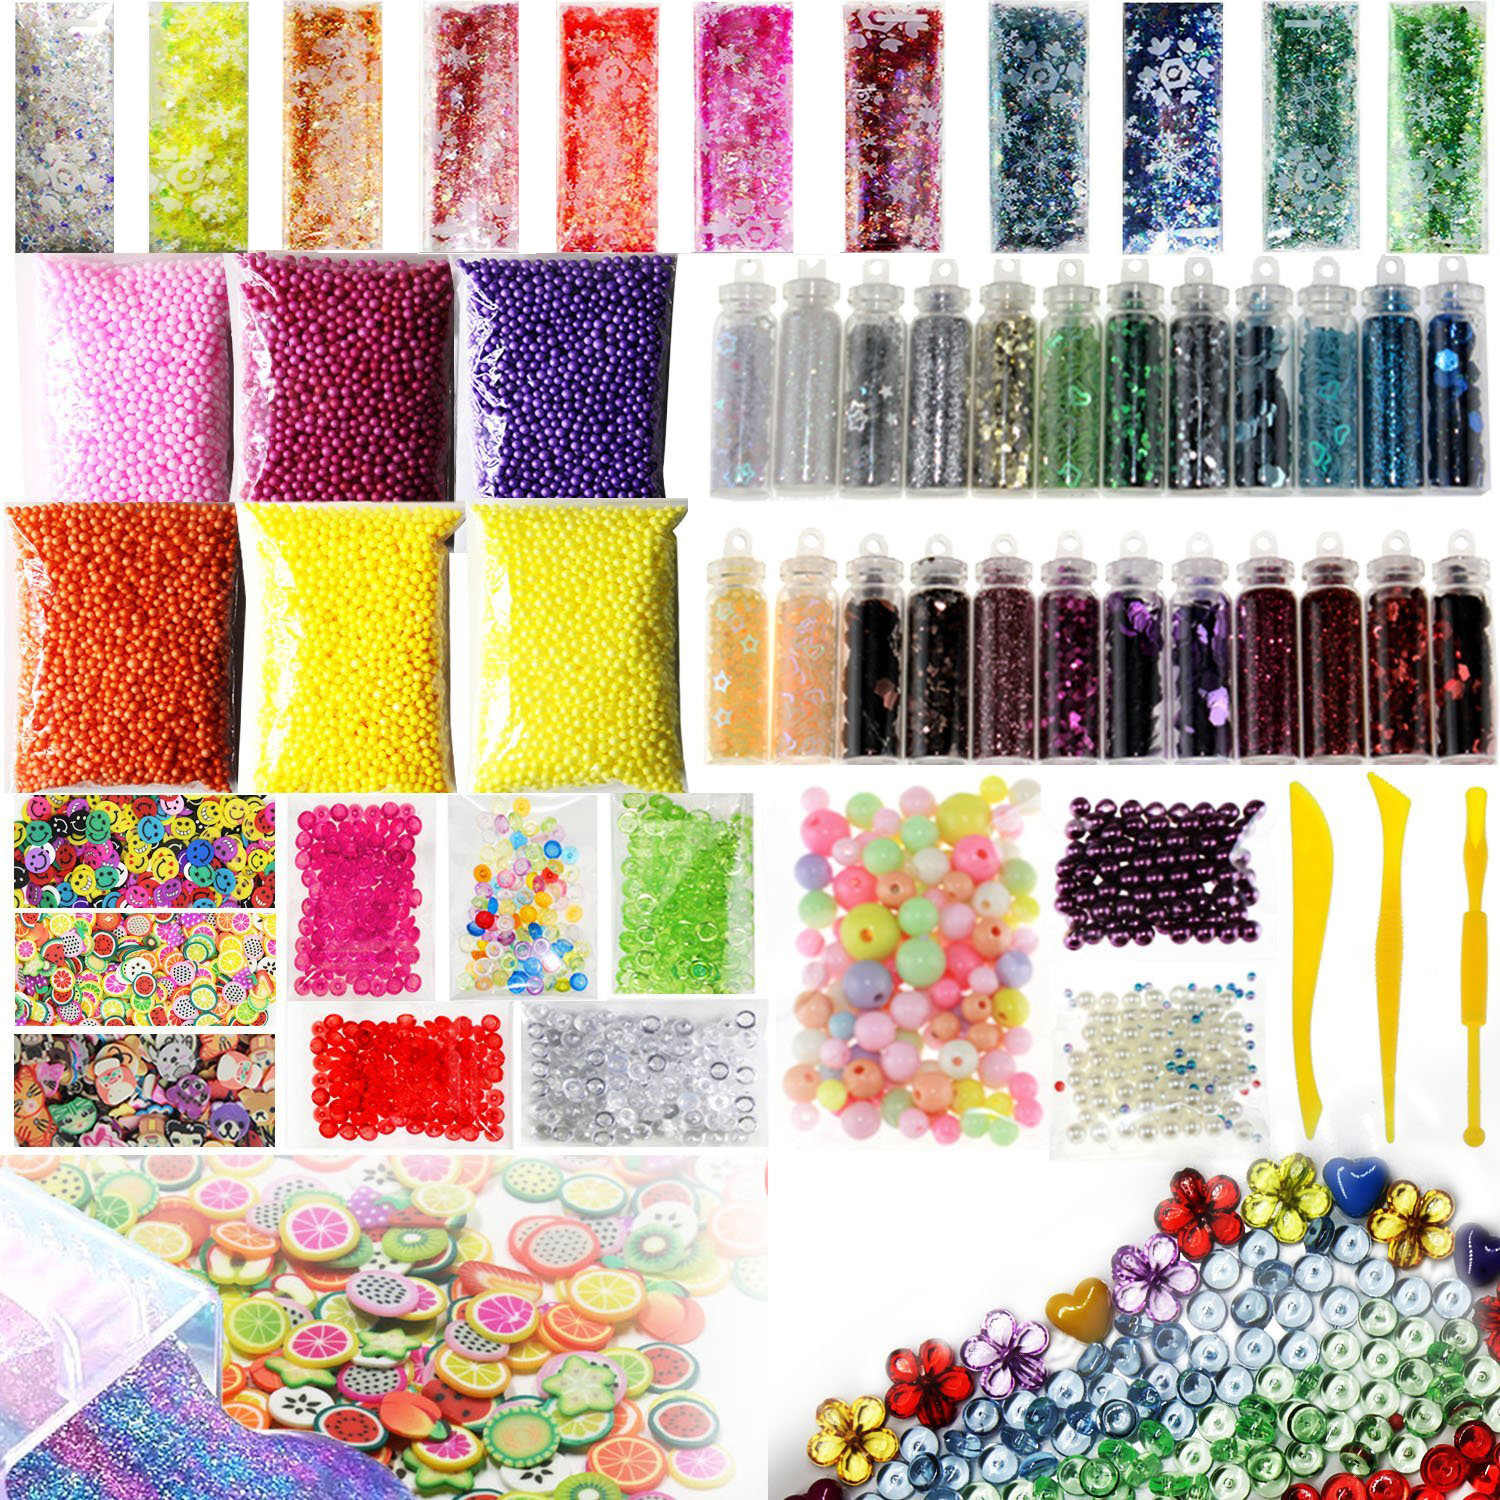 55 Pack Making Kits Supplies for Slime, Including Foam Balls, Fishbowl Beads, Net, Glitter Jars, Pearls, Sugar Paper, Spoon